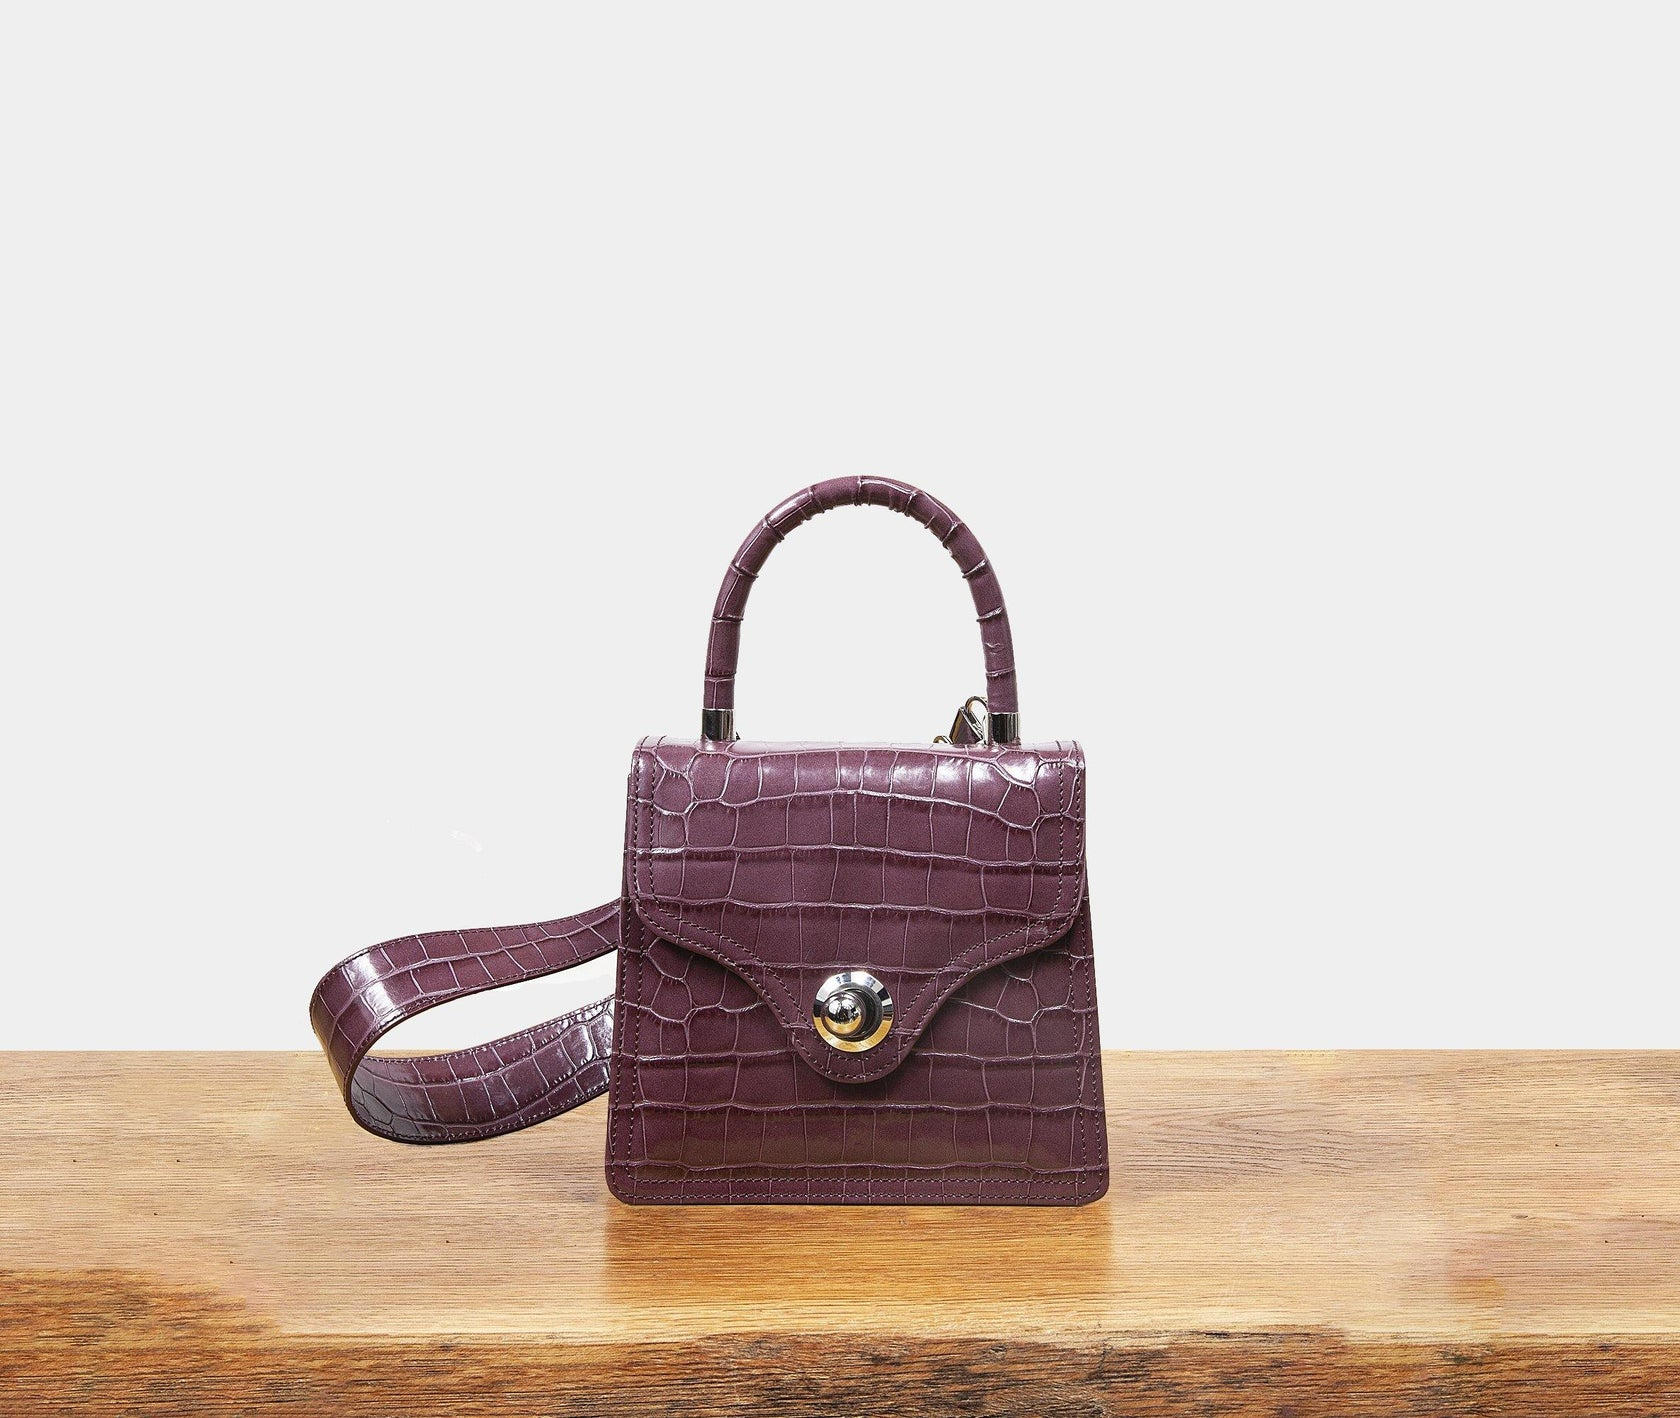 Lady Bag - Brown Rose Croc